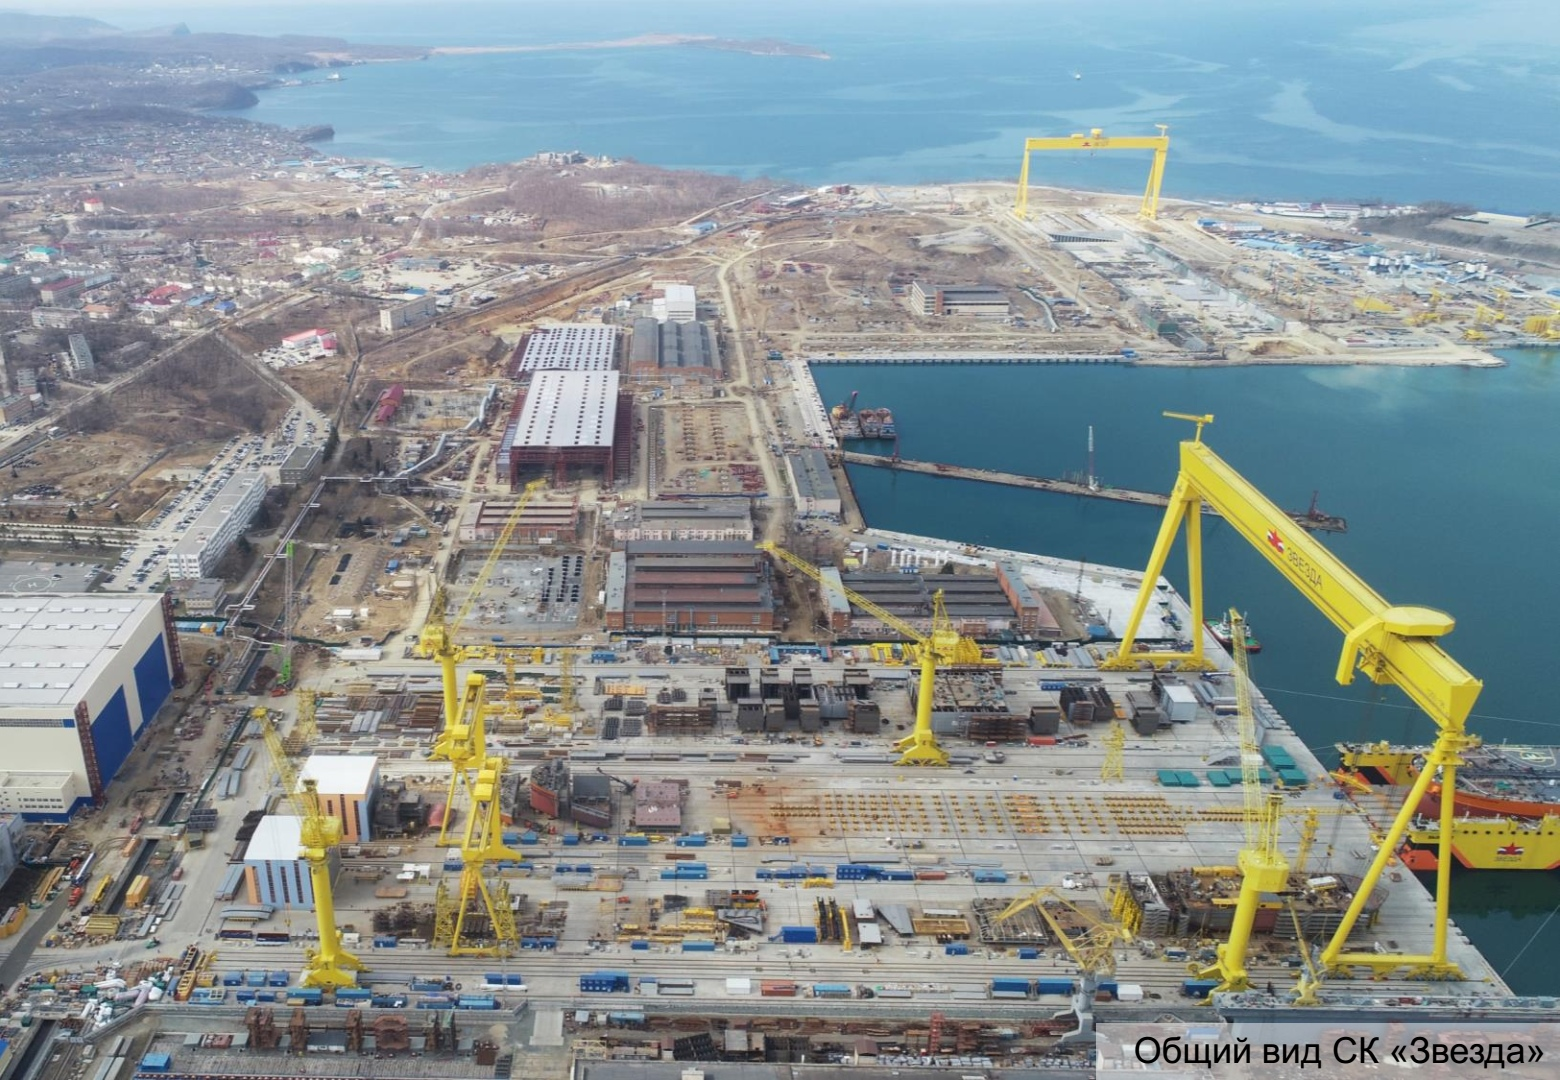 Russian Naval Shipbuilding Industry: News - Page 26 5-J3N54HhLo